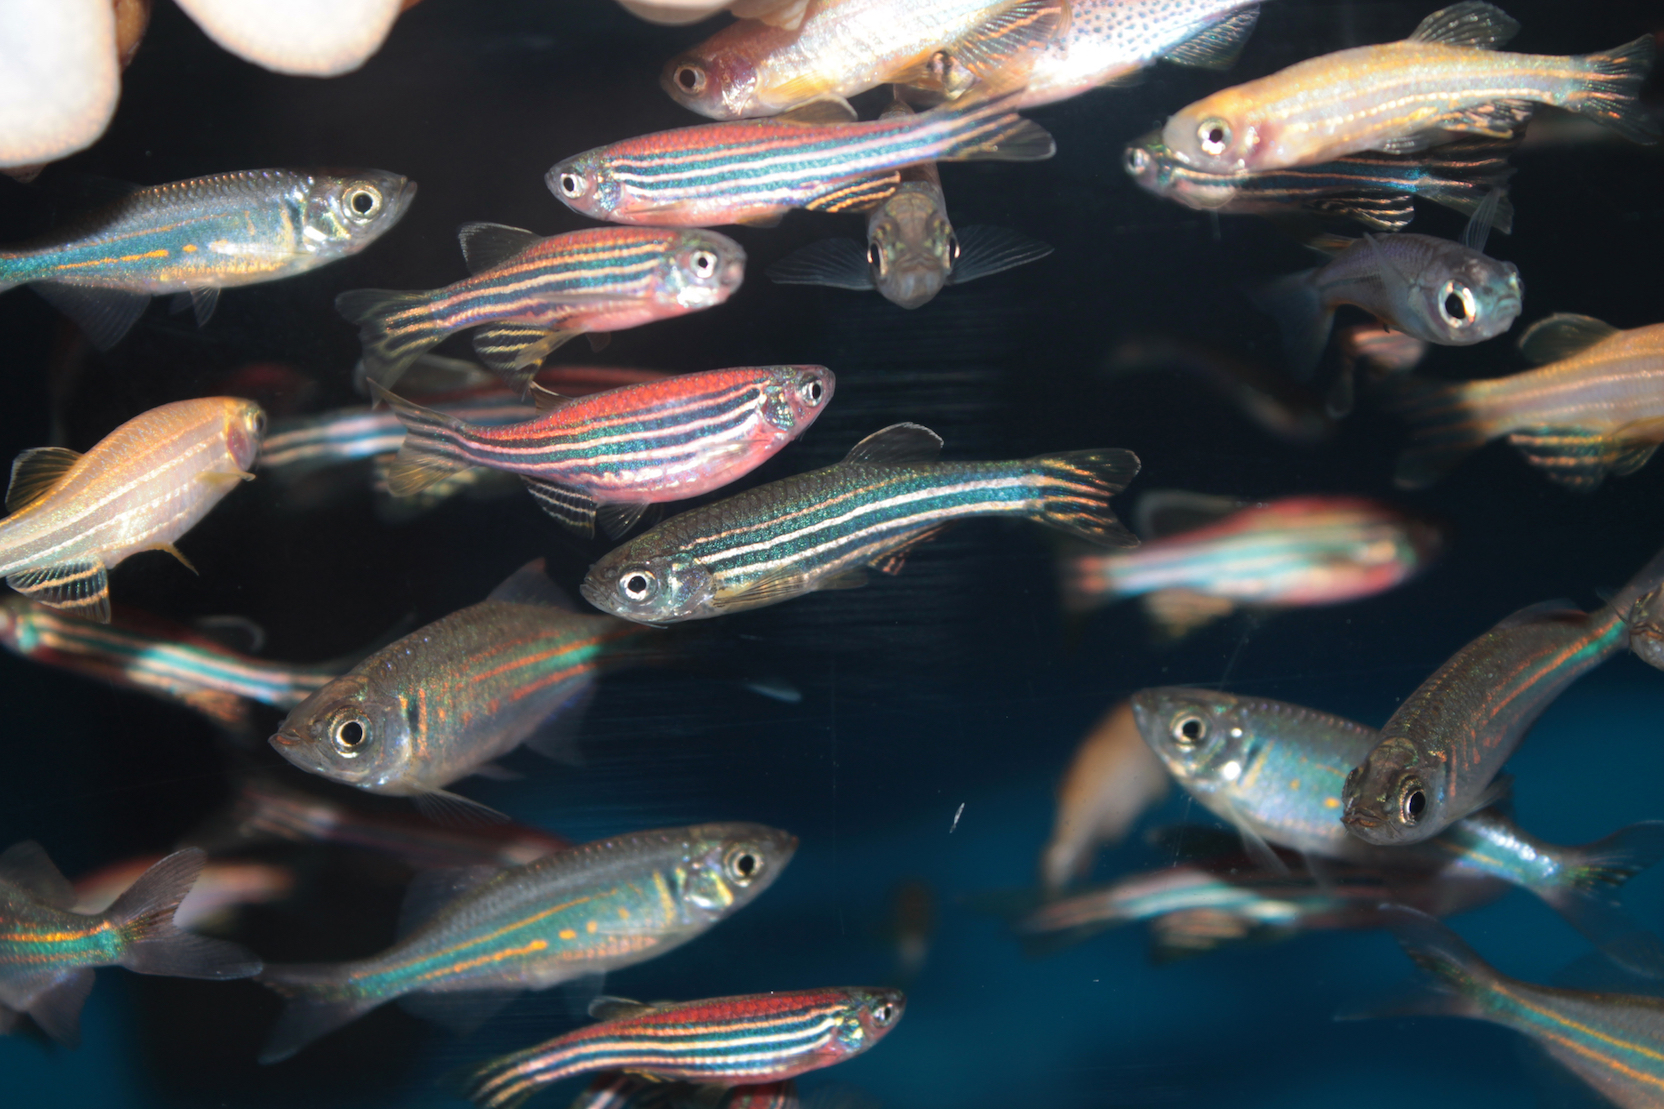 Zebrafish are helping scientists unlock the keys to potentially healing cancer, muscular dystrophy, and now even spinal cord injuries.